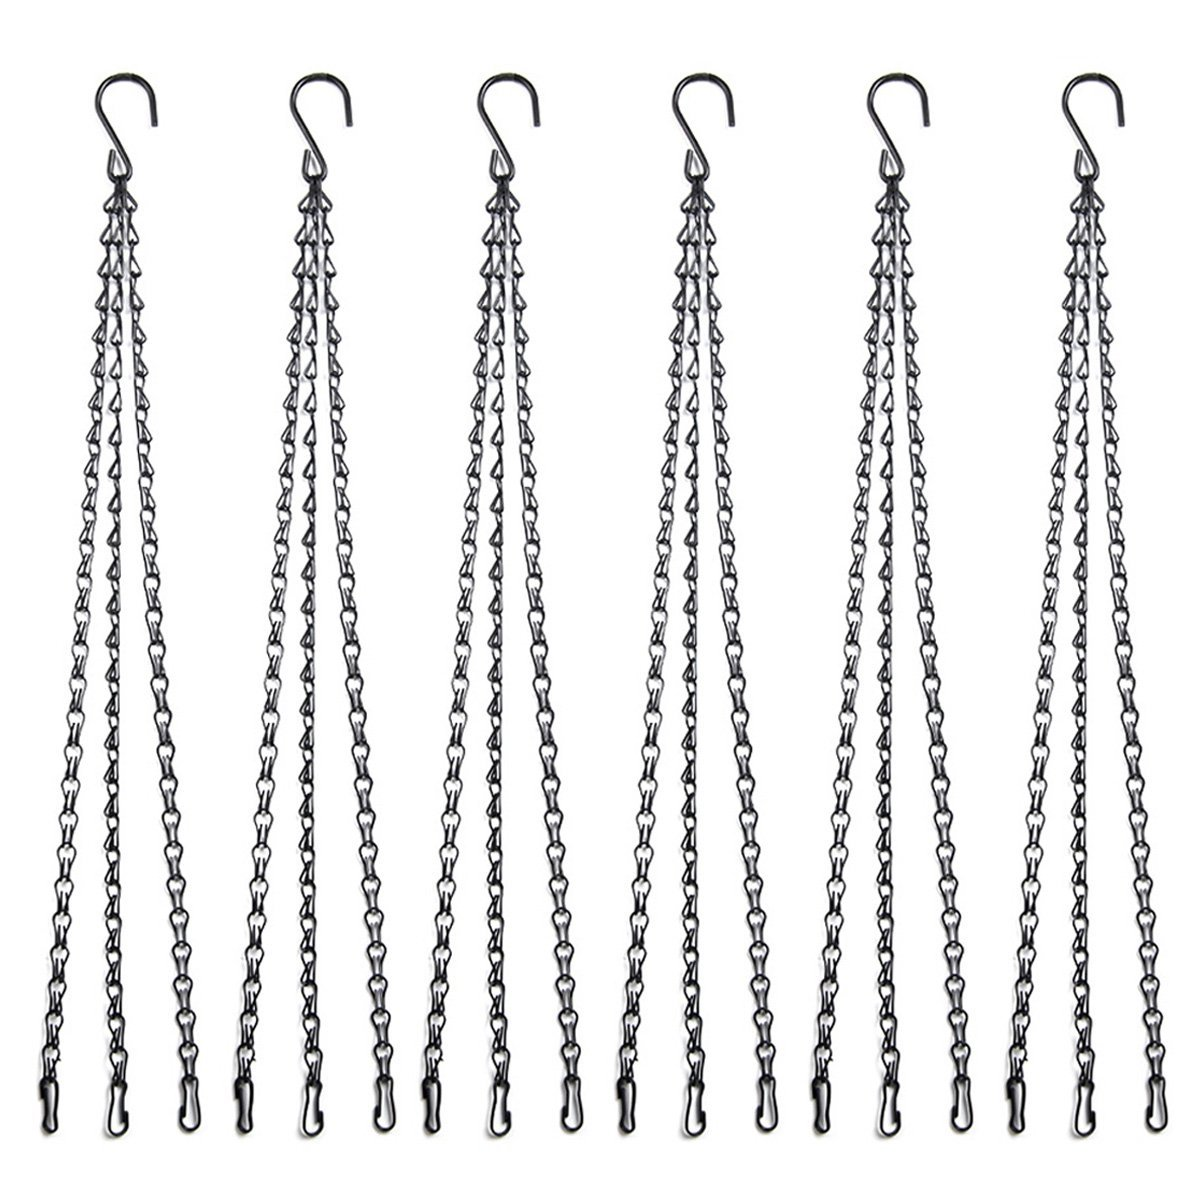 Magarz 22 Inch Galvanized replacement hanging baskets and flower pots chain for outdoor or indoor (6pcs black)